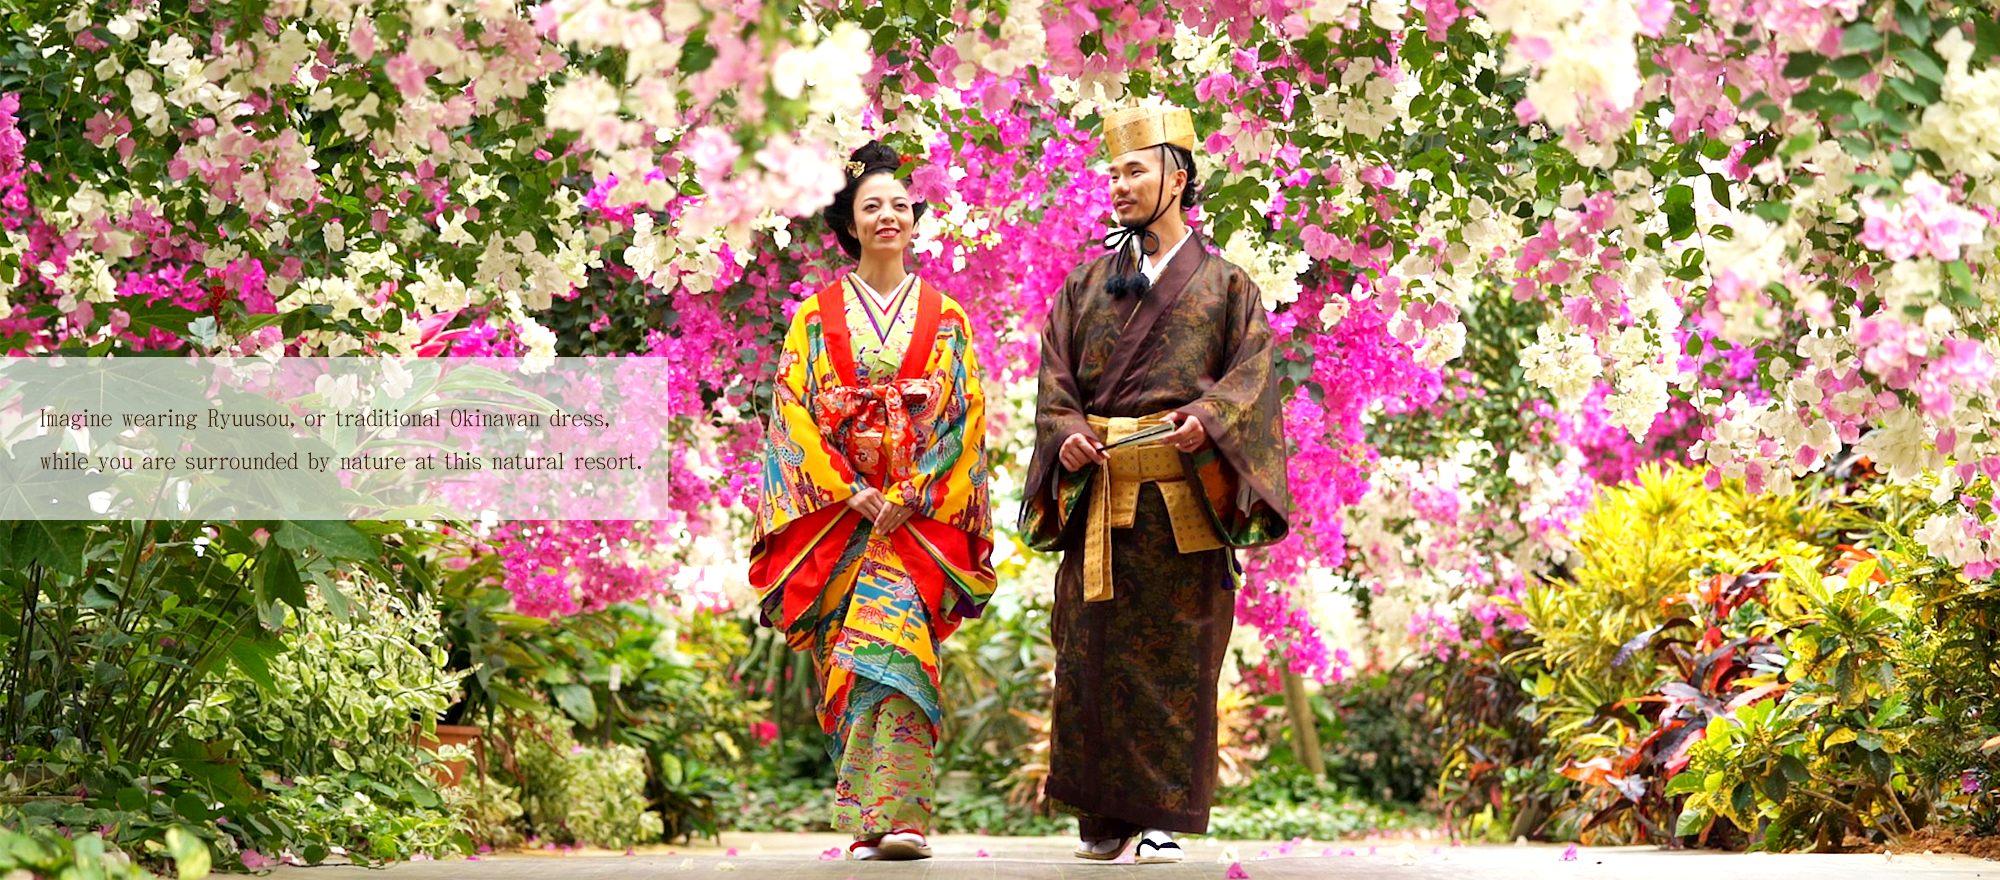 Imagine wearing Ryuusou, or traditional Okinawan dress, while you are surrounded by nature at this natural resort.